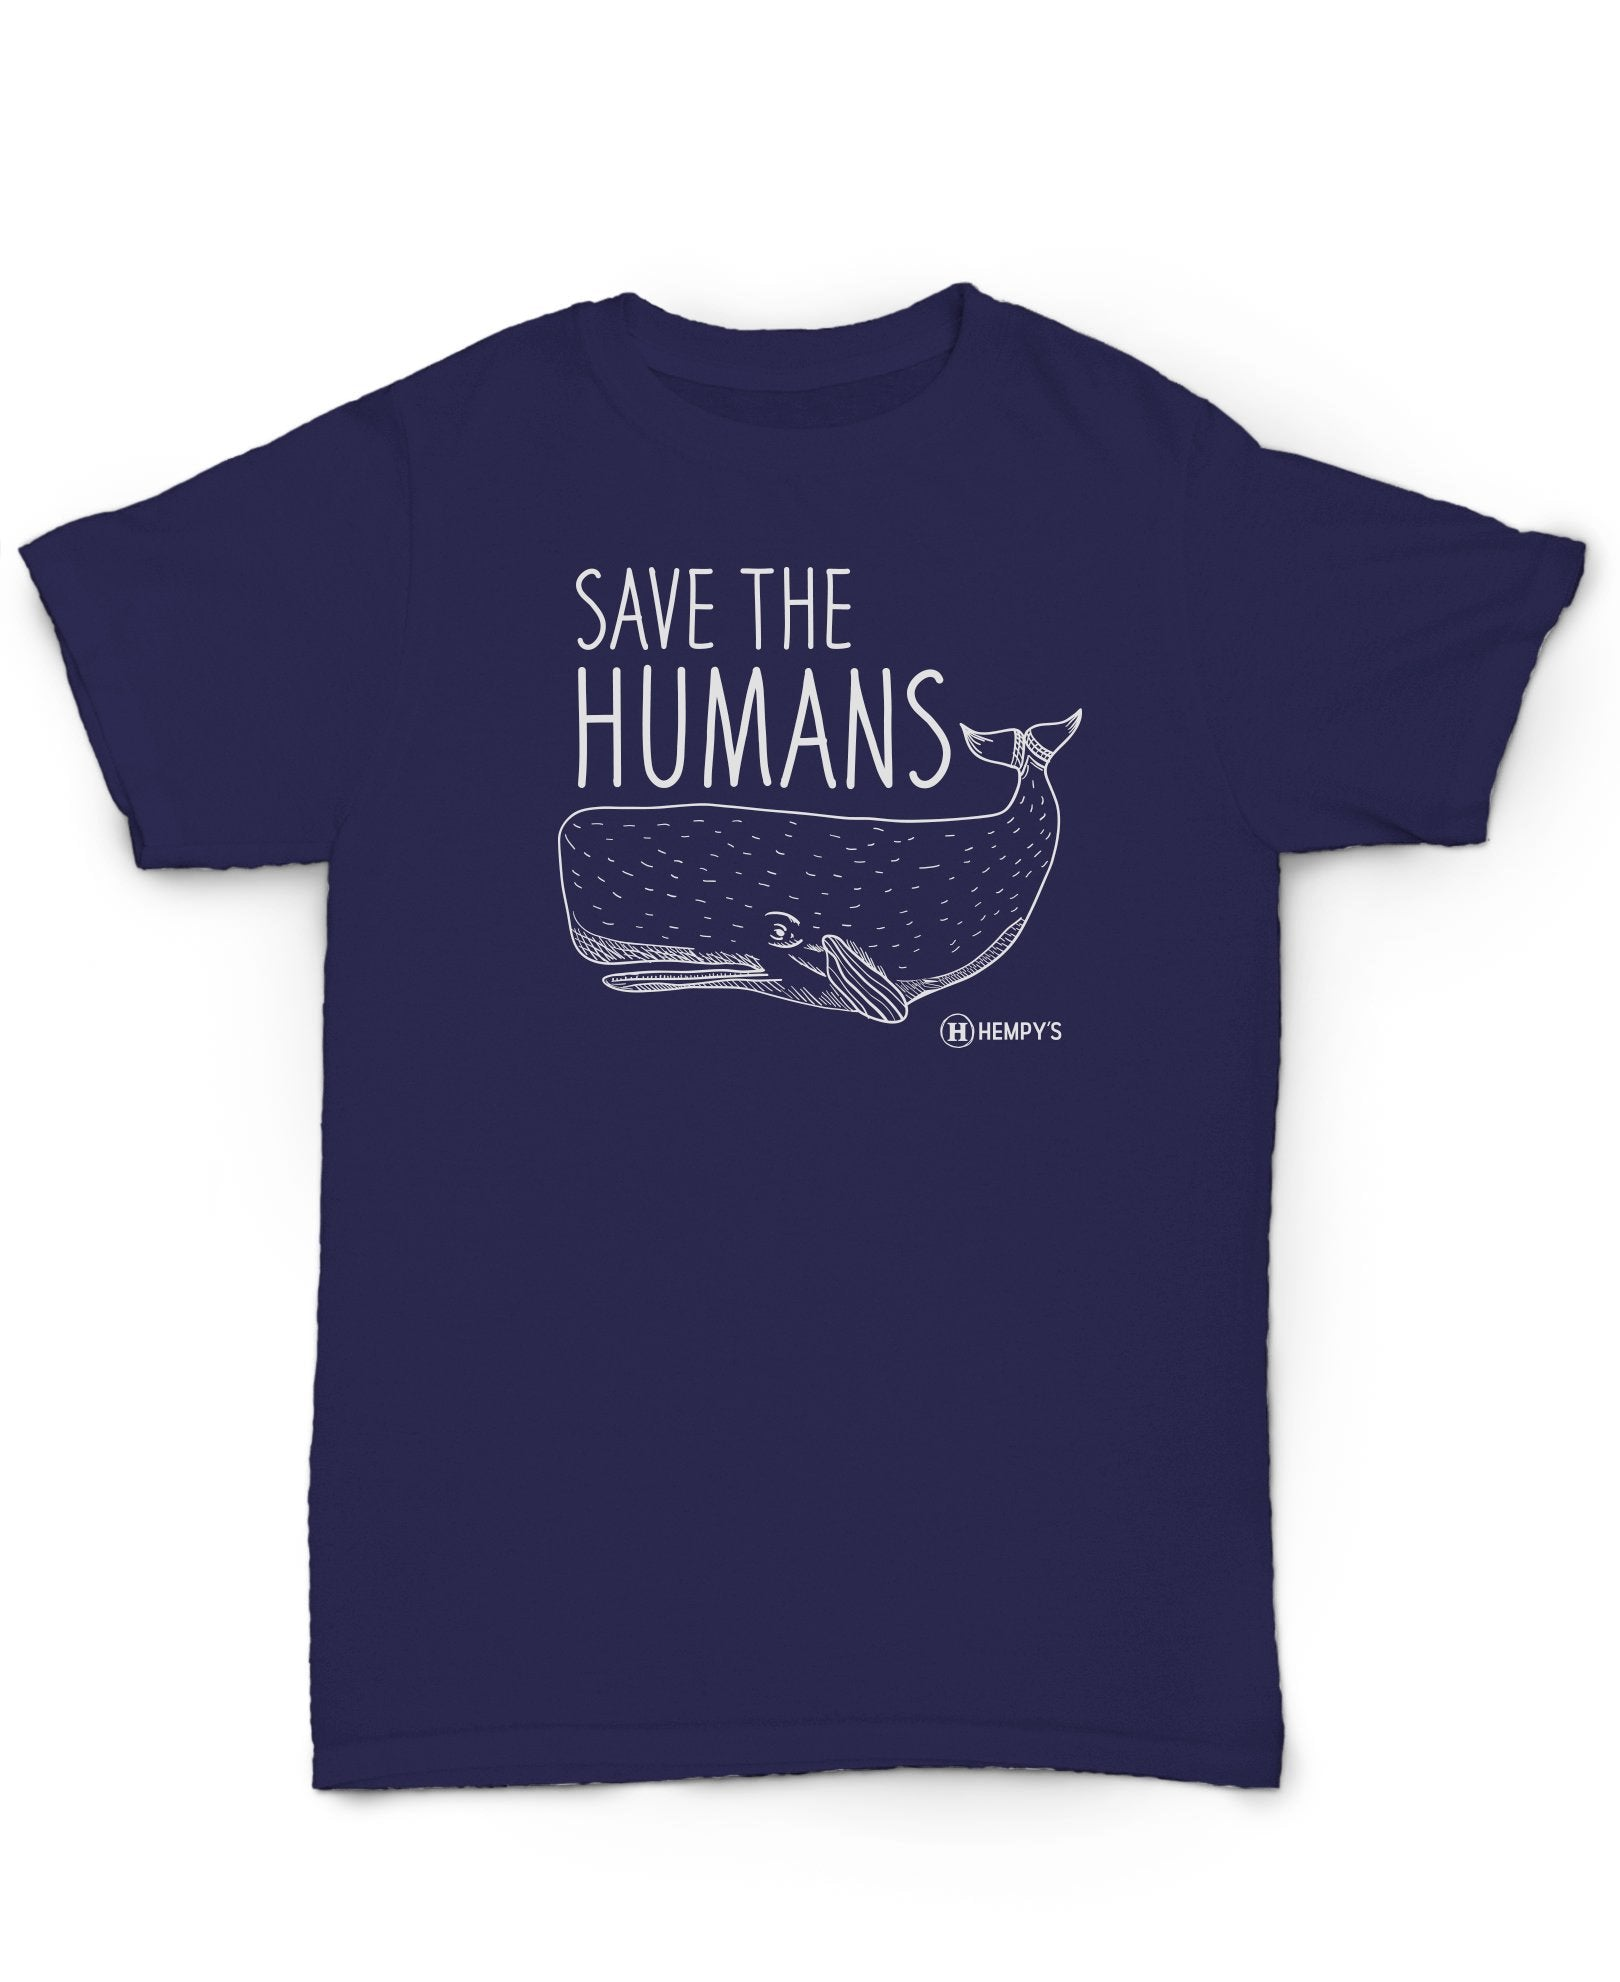 Hempy's Hemp Shirt Save The Humans